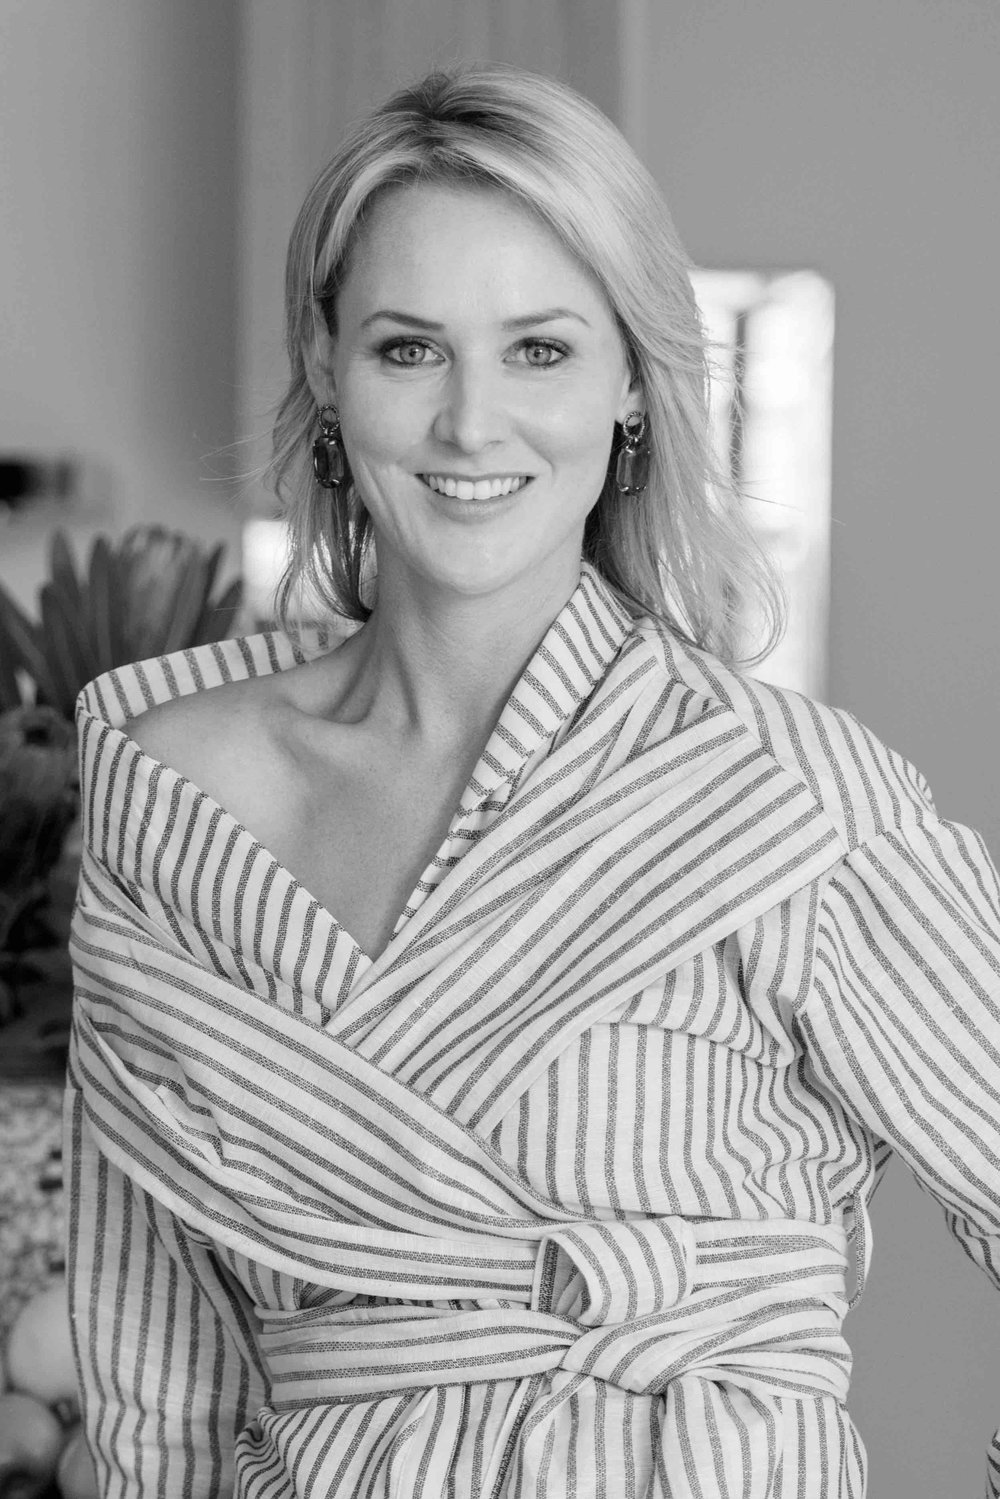 Amy Spargo Head Shot 2018 BW Cropped copy.jpg